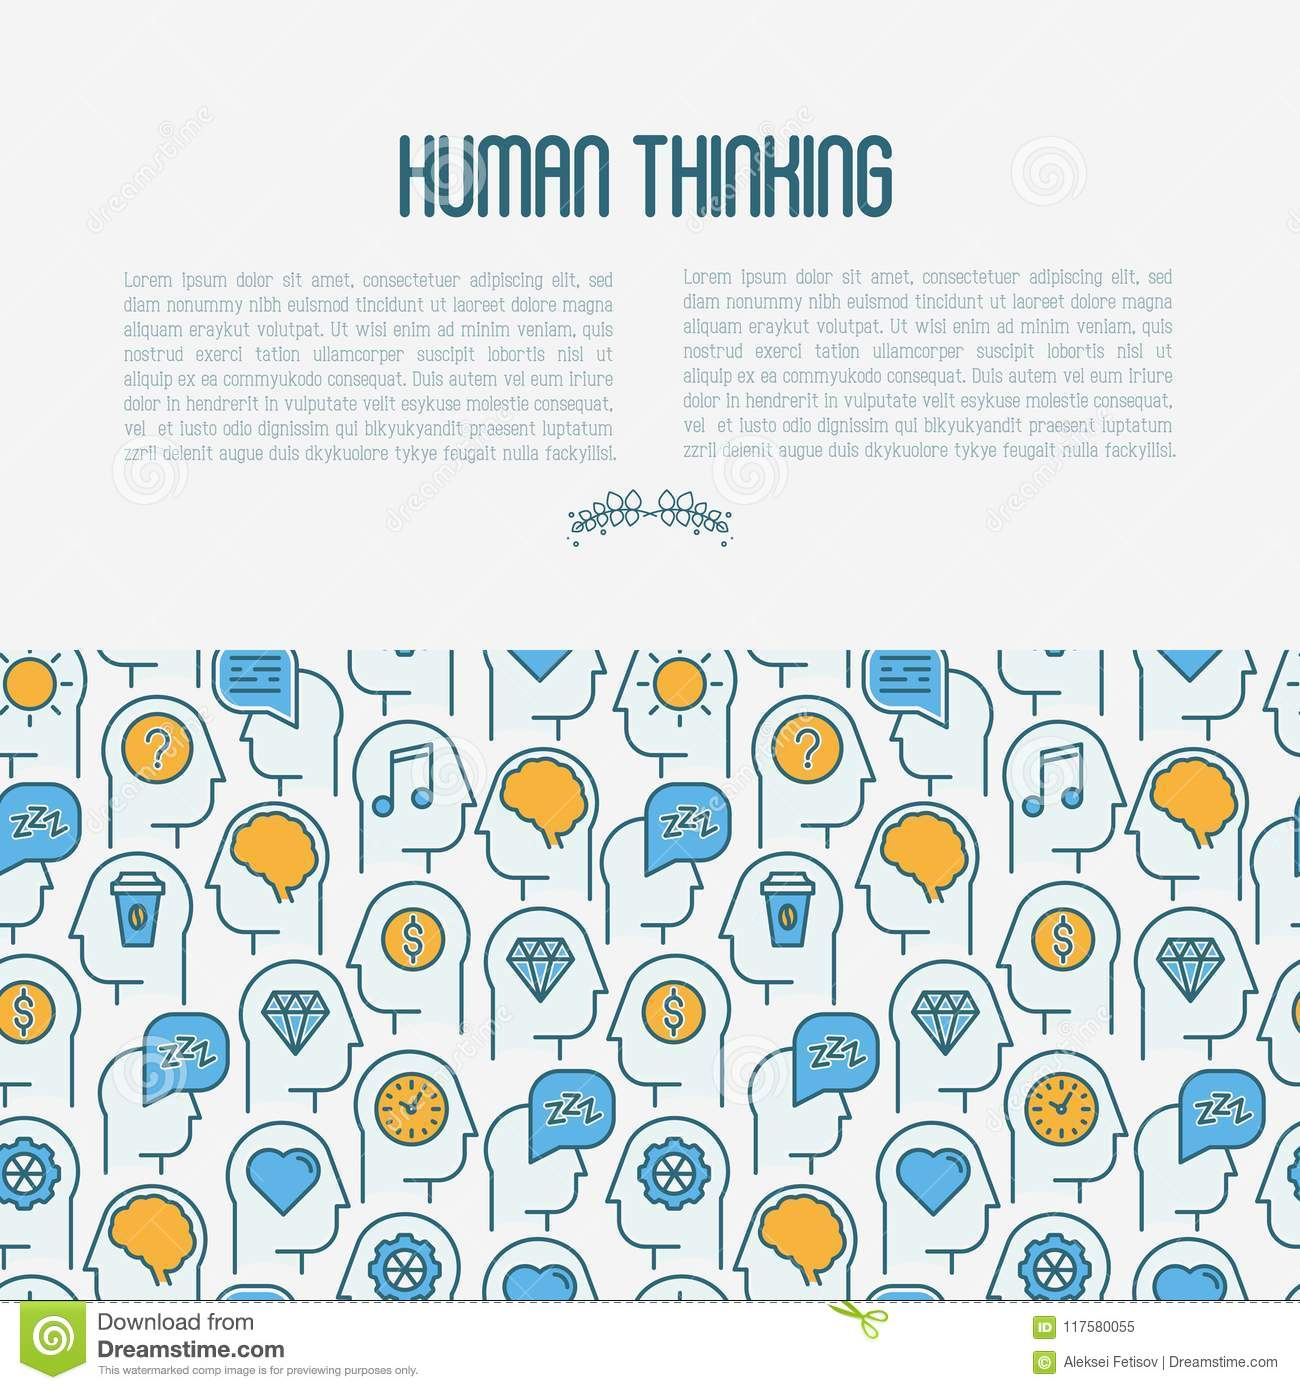 Human thinking concept with thin line icons